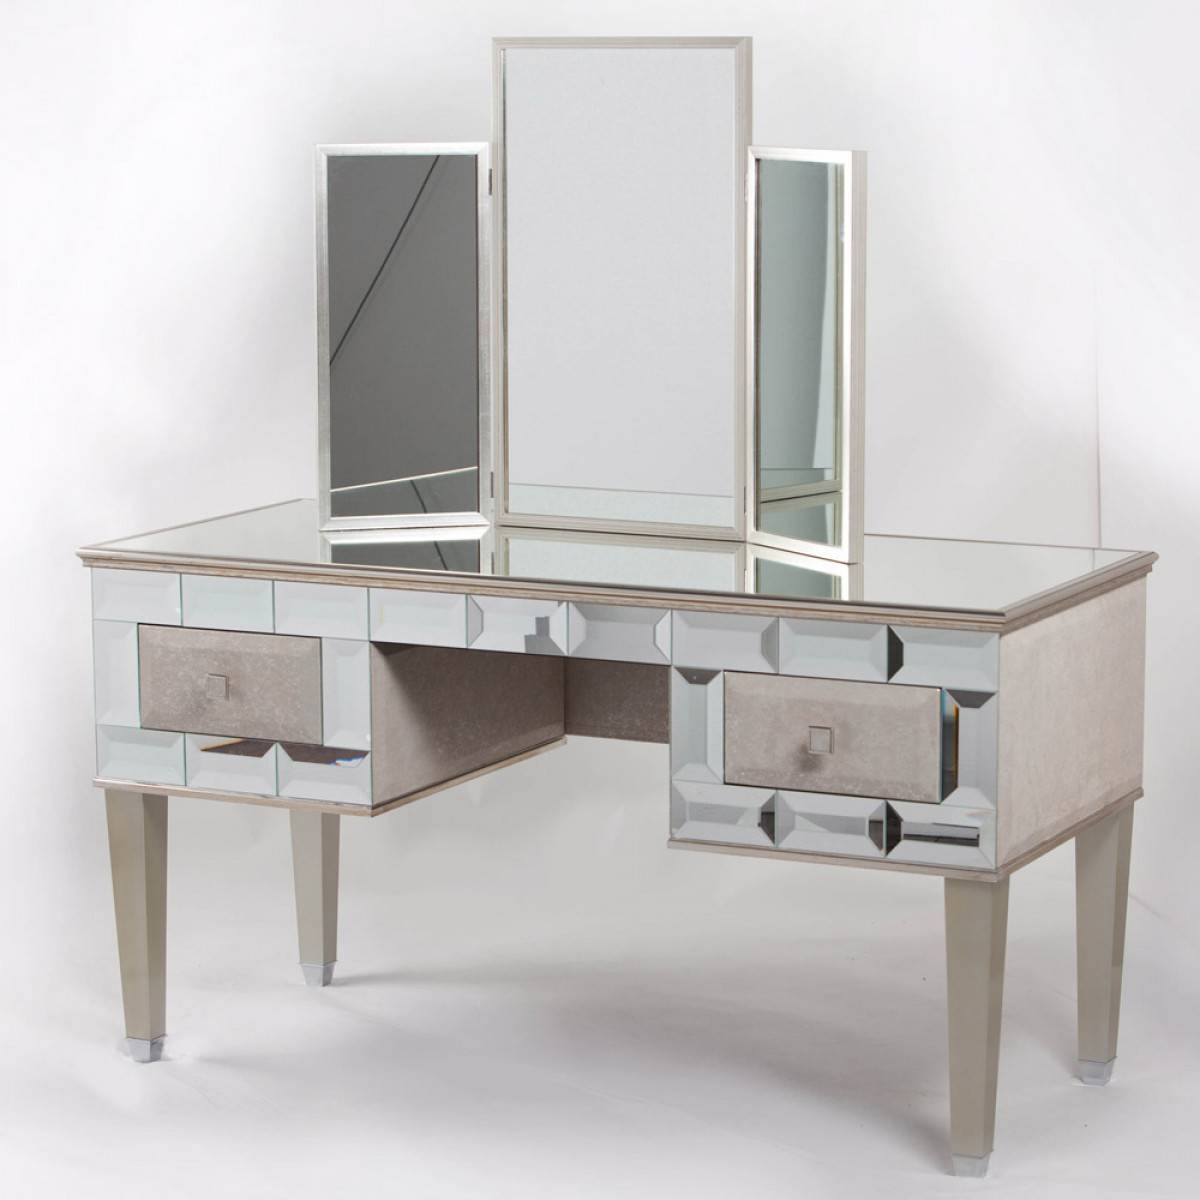 Mirrored Vanity Table Furniture Sydney : Mirrored Vanity Desk With Regard To Contemporary Dressing Table Mirrors (View 22 of 25)